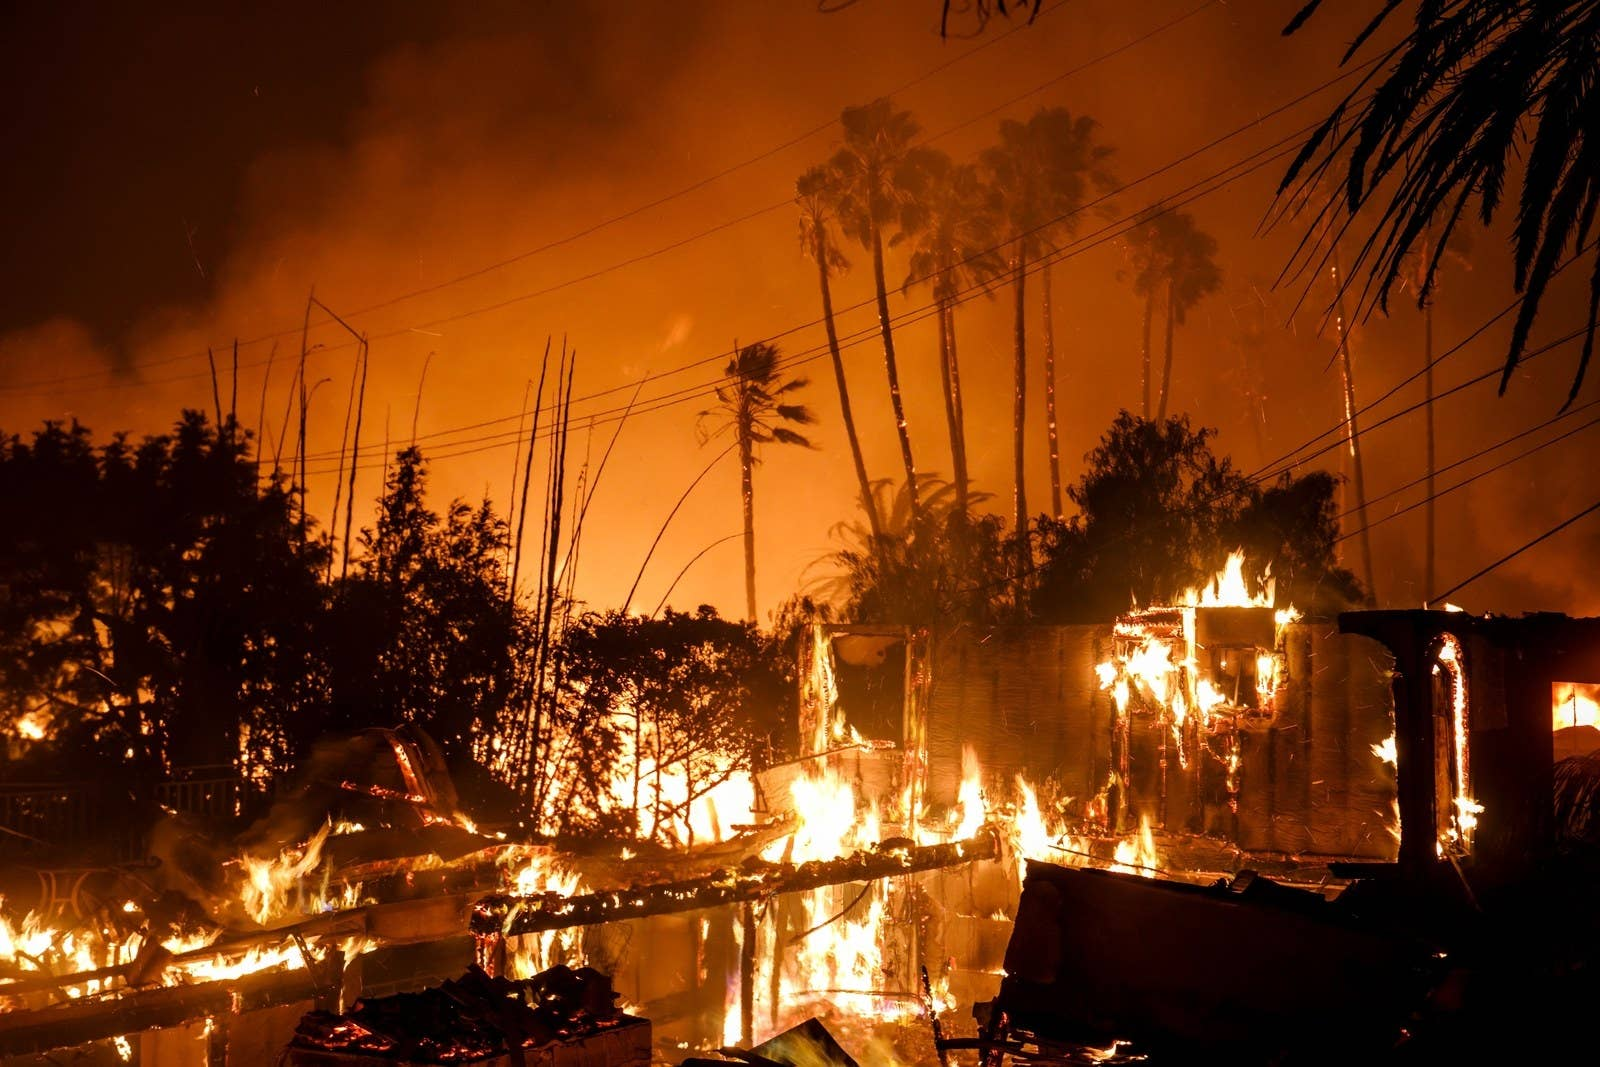 A Home Is Destroyed In Ventura California On Dec 5